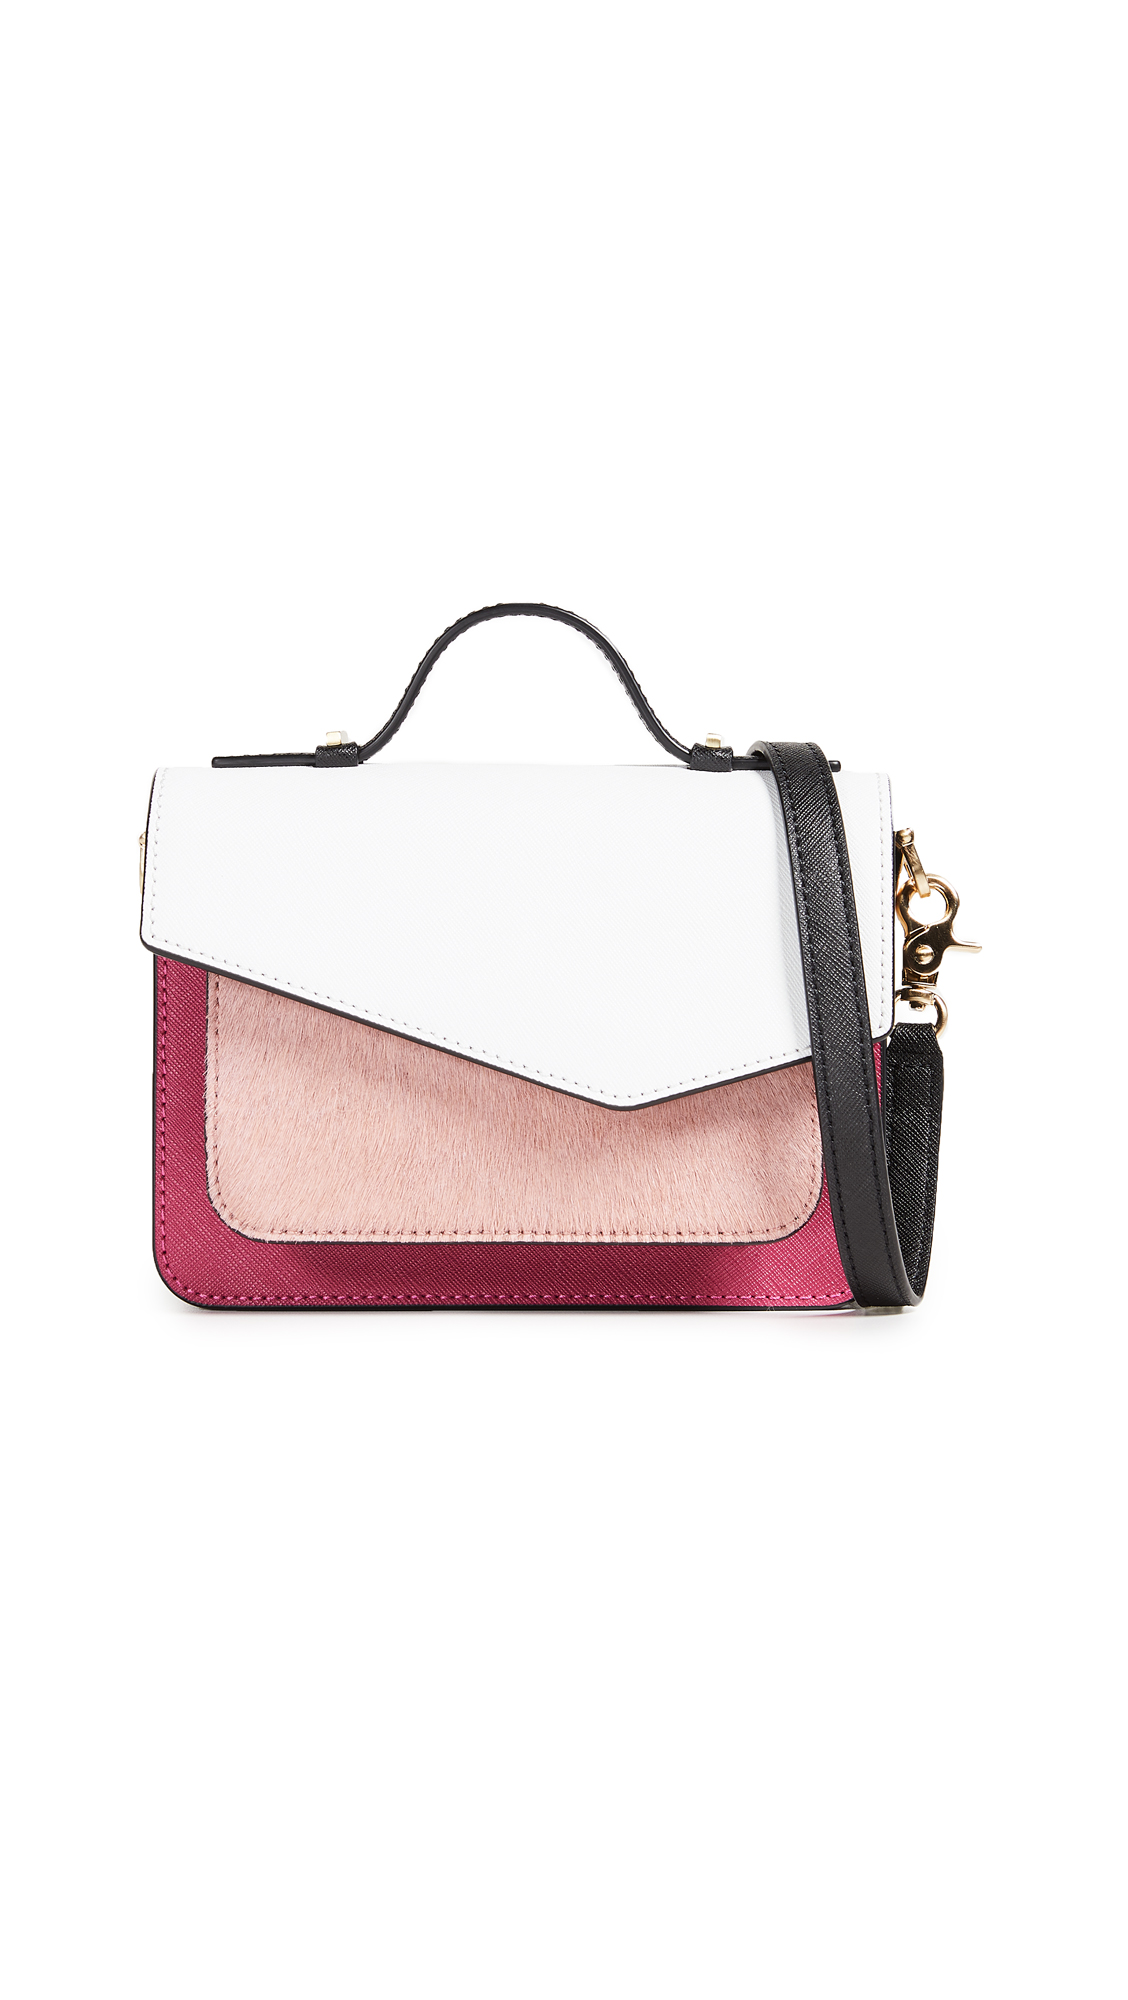 COBBLE HILL MINI CROSS BODY BAG